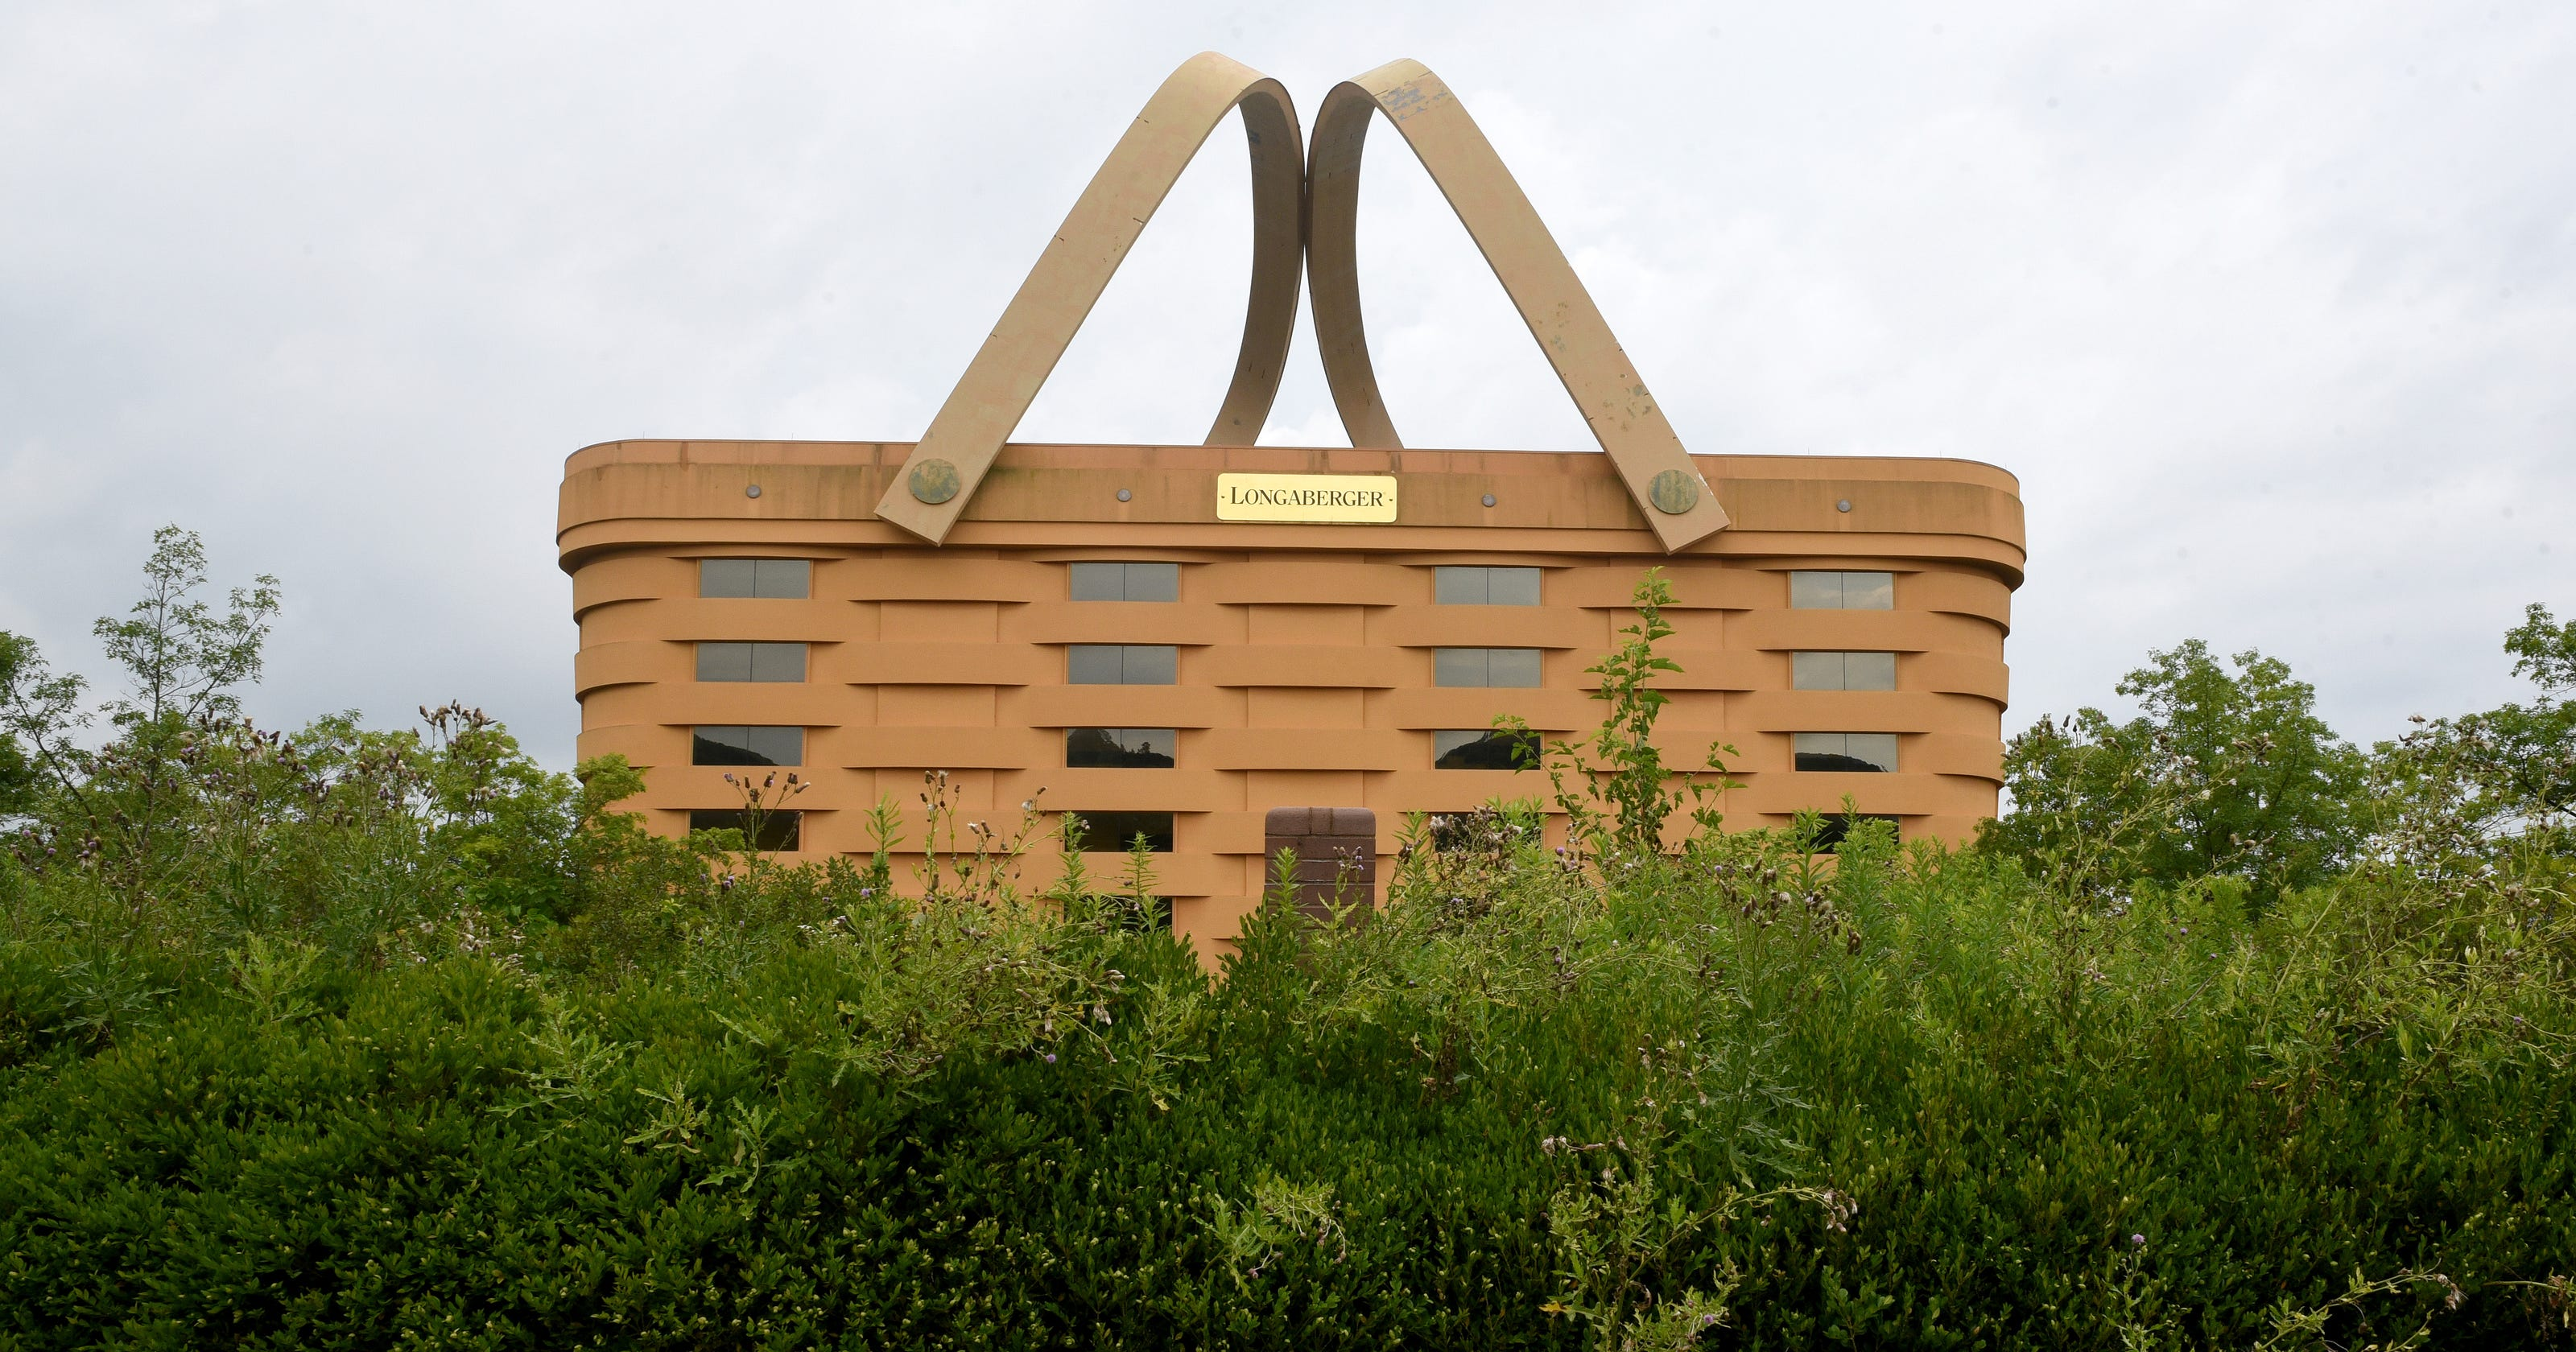 Longaberger basket might sell for 1 65 million to tennessee investor